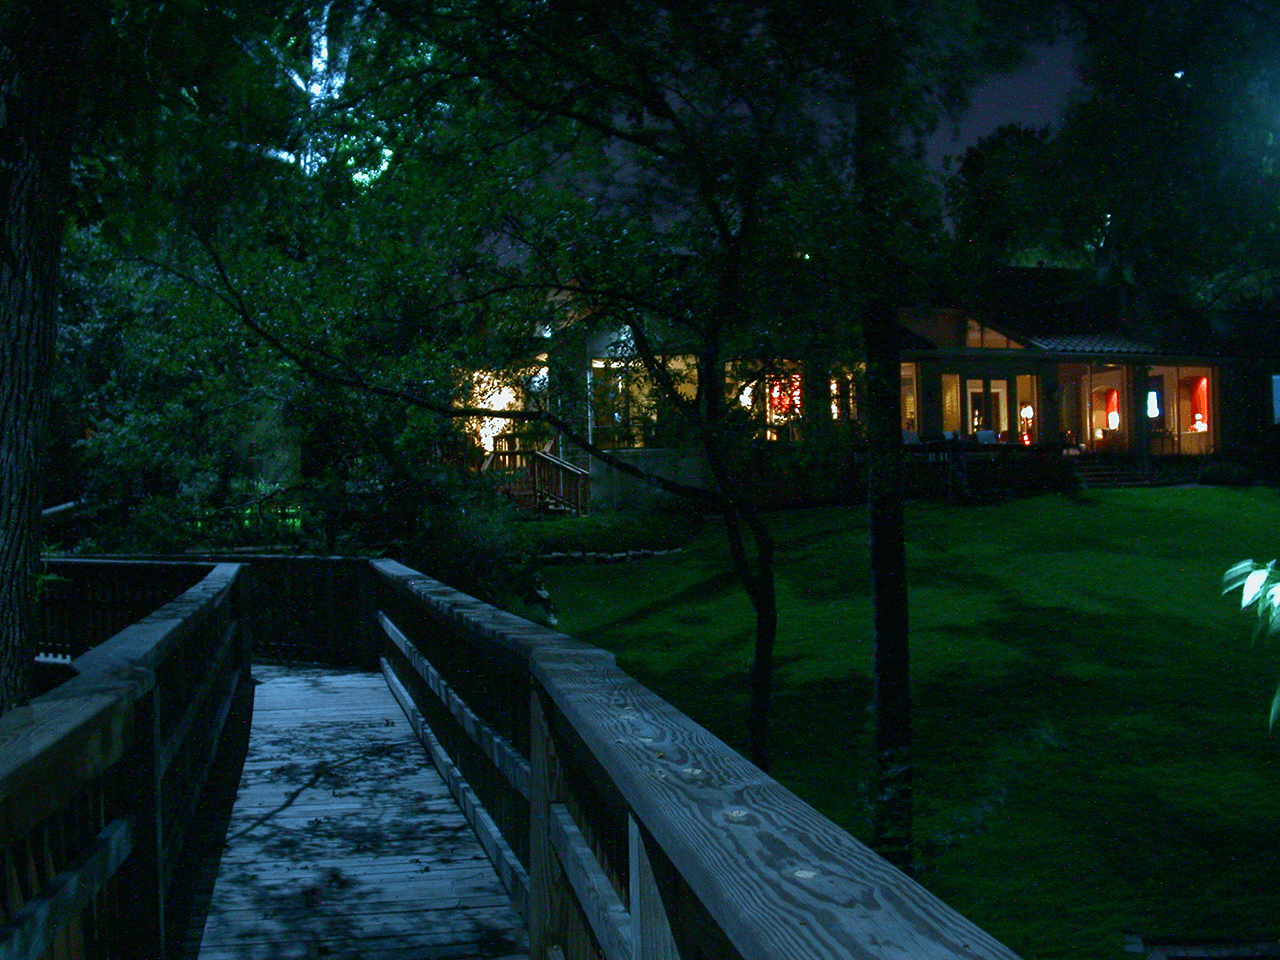 View of the back of a house from a bridge in the backyard being delicately lighted with moonlights in the trees